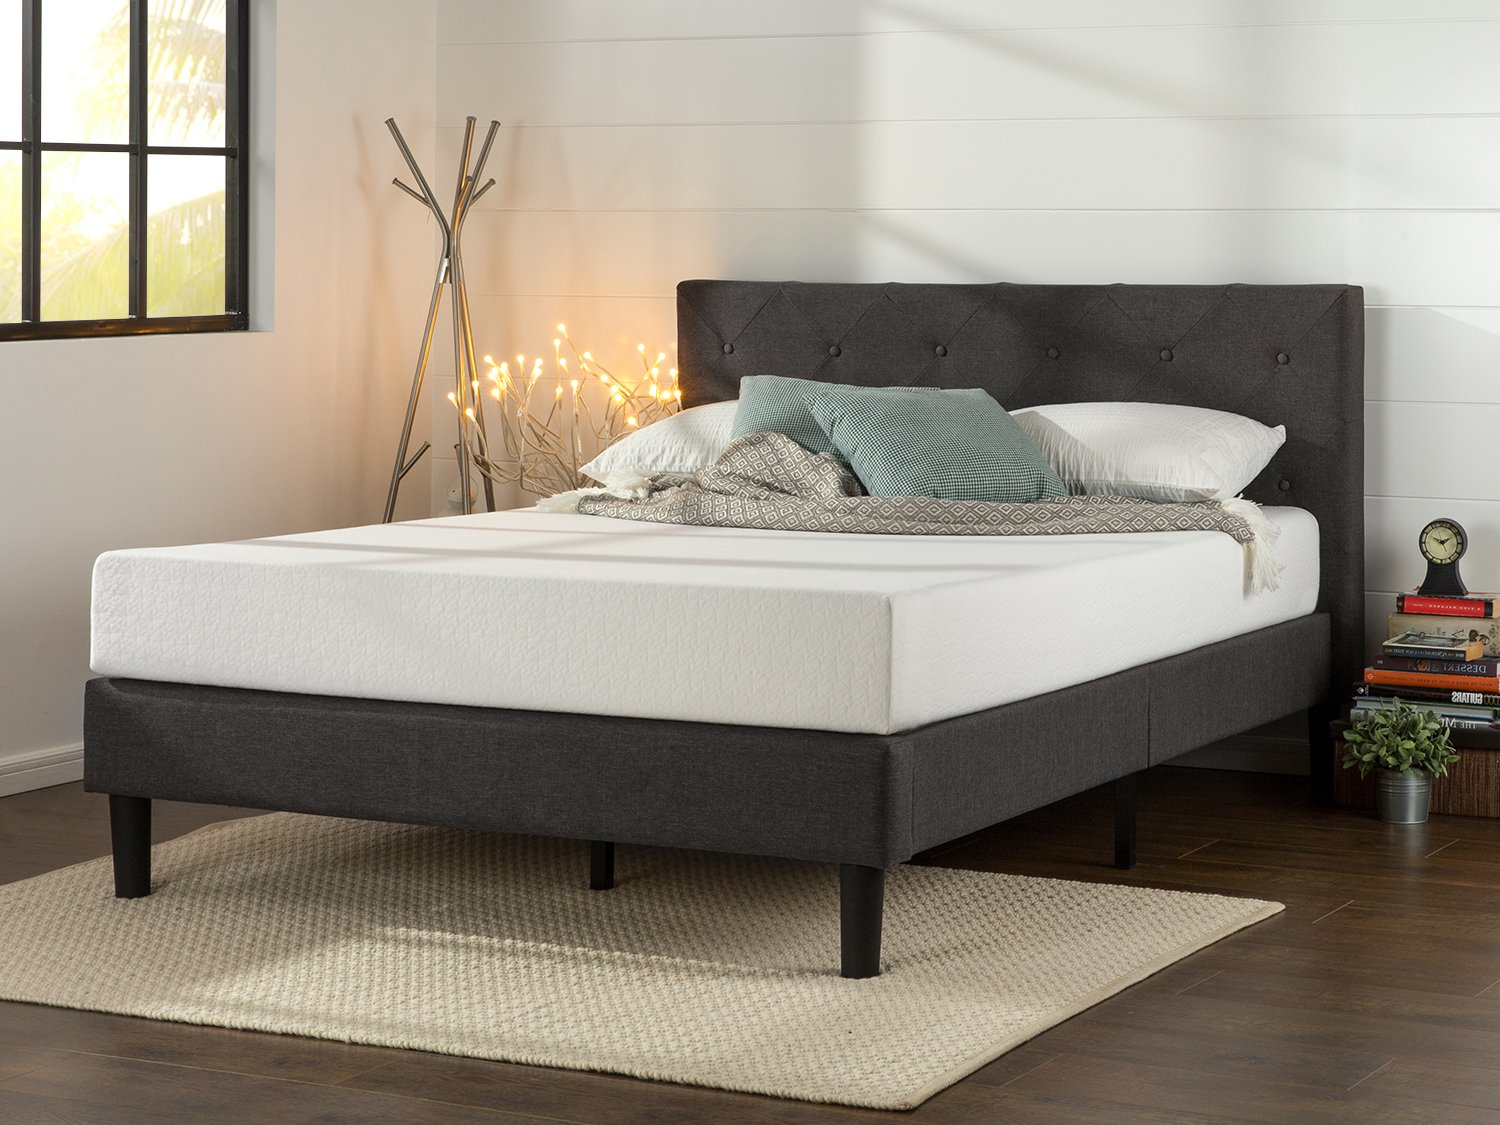 Amazon.com: Zinus Upholstered Diamond Stitched Platform Bed with Wooden  Slat Support, Queen: Kitchen & Dining